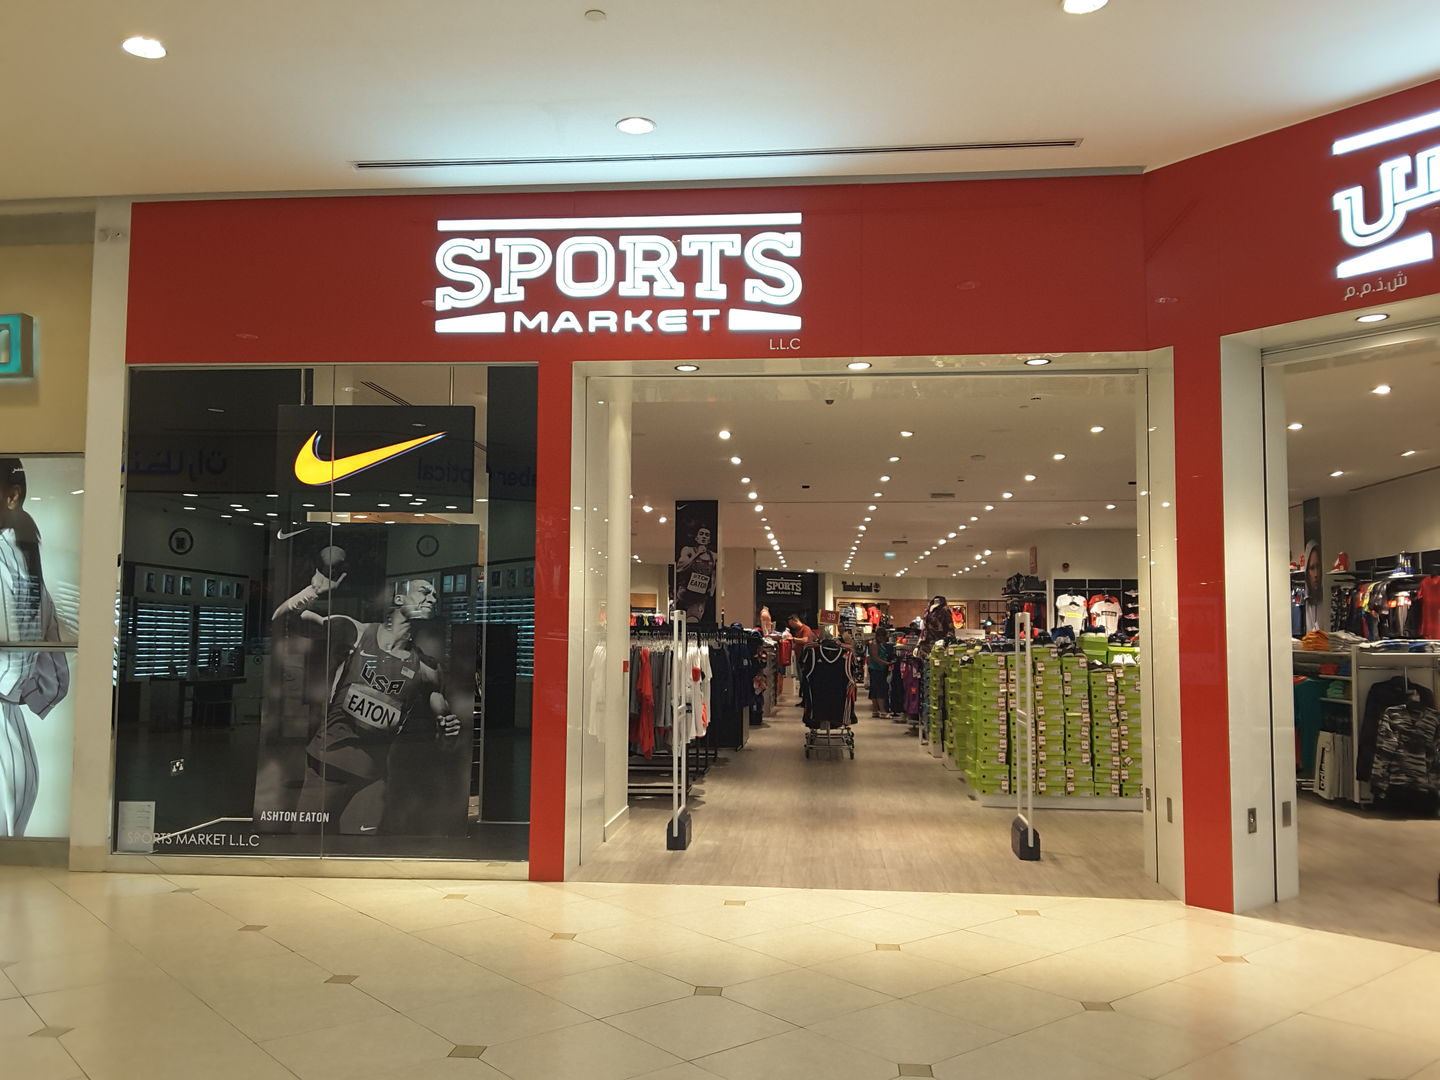 HiDubai-business-sports-market-shopping-sporting-goods-equipment-wafi-umm-hurair-2-dubai-2